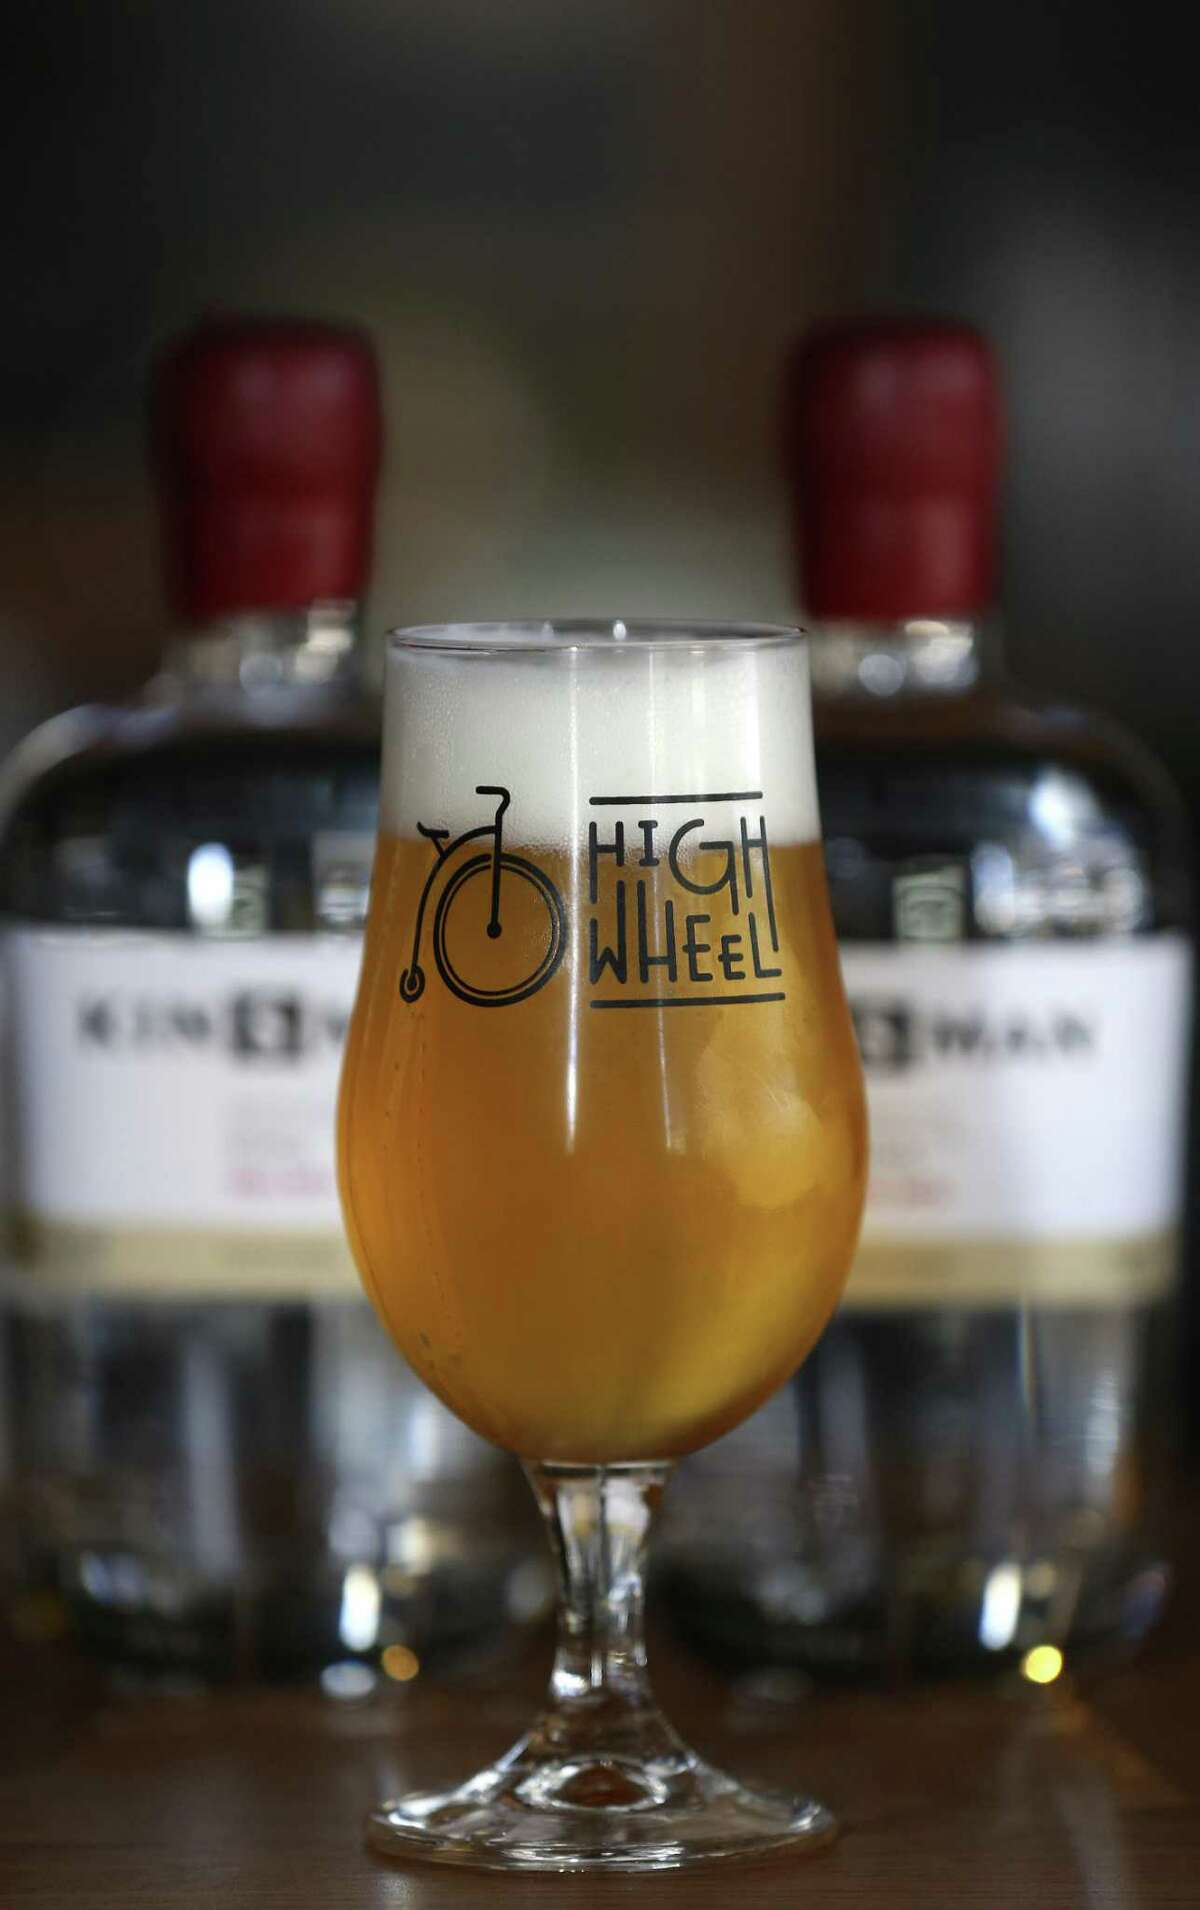 A glass of saison, from Dórcol Distilling Co.'s HighWheel Beerworks